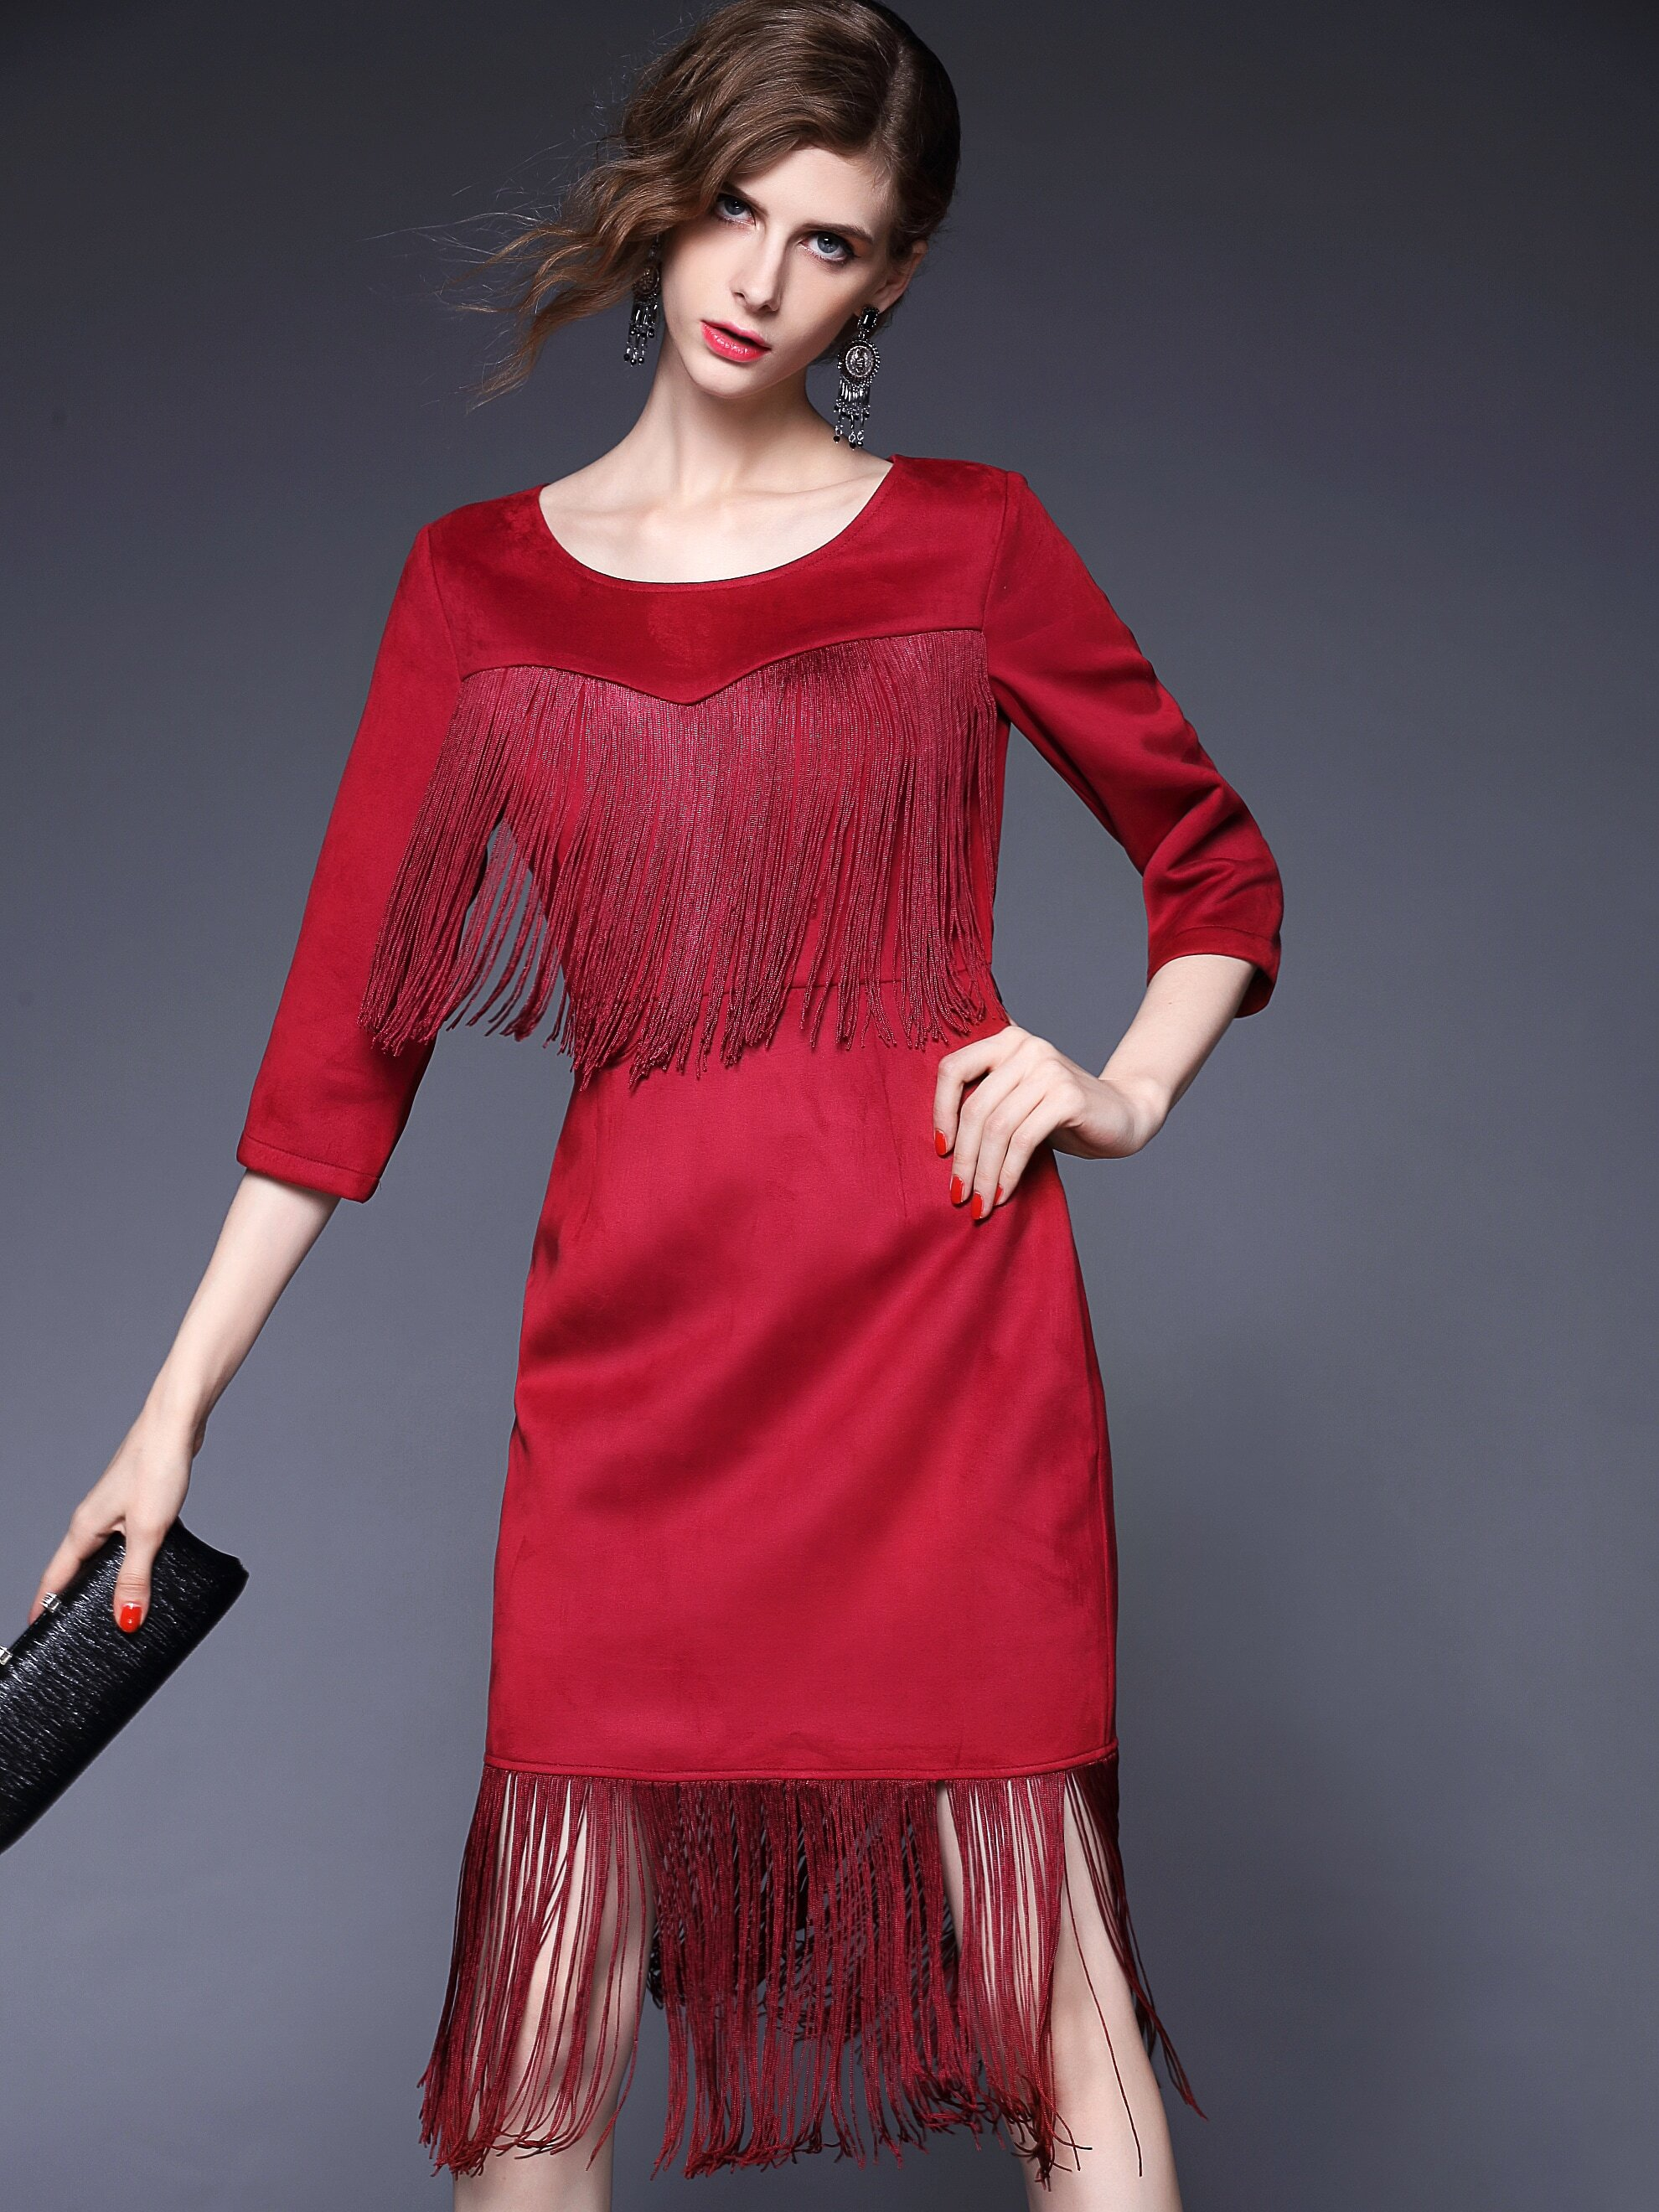 Win Red Round Neck Length Sleeve Tassel Dress